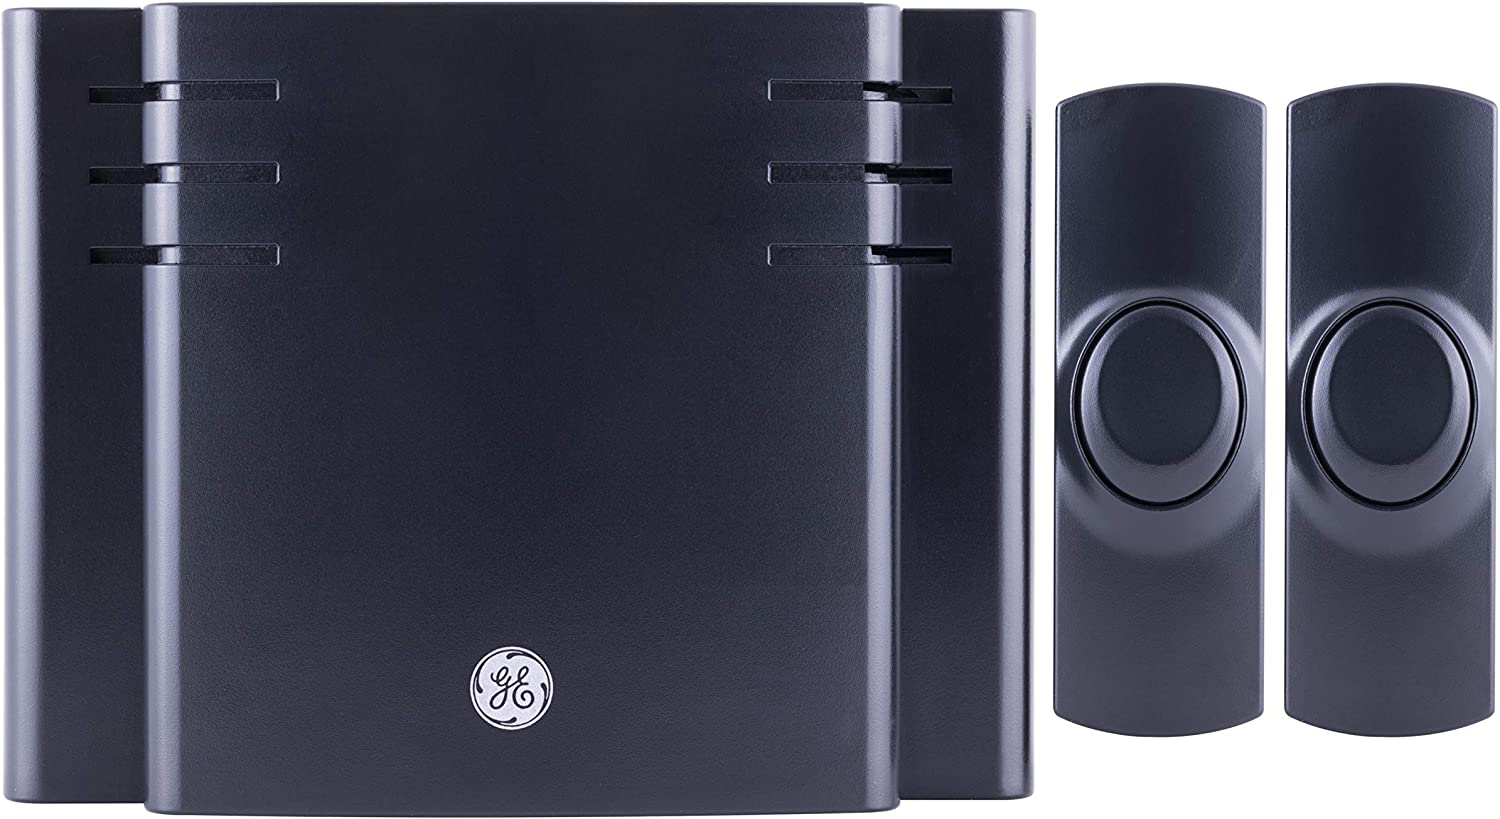 GE, Black, Wireless Doorbell Kit, Battery-Operated, 8 Melodies, 1 Receiver, 2 Push Buttons, 4 Volume Levels, 150 Ft. Range, 45202